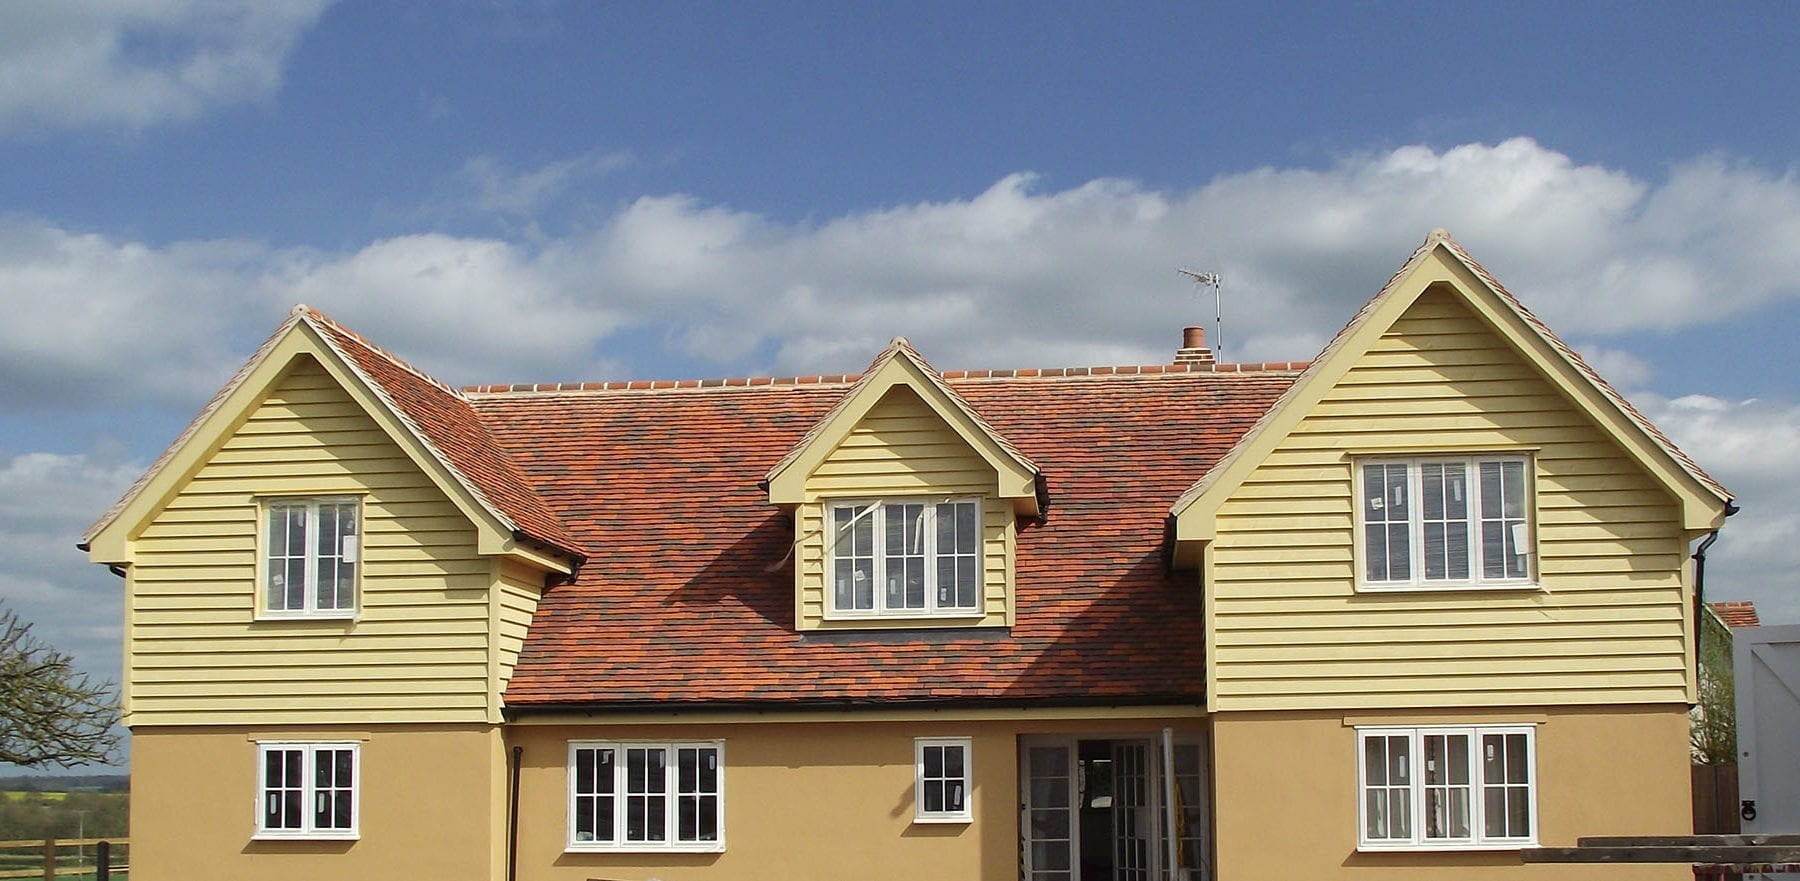 Lifestiles - Handcrafted Tilehurst Clay Roof Tiles - Clavering, England 4